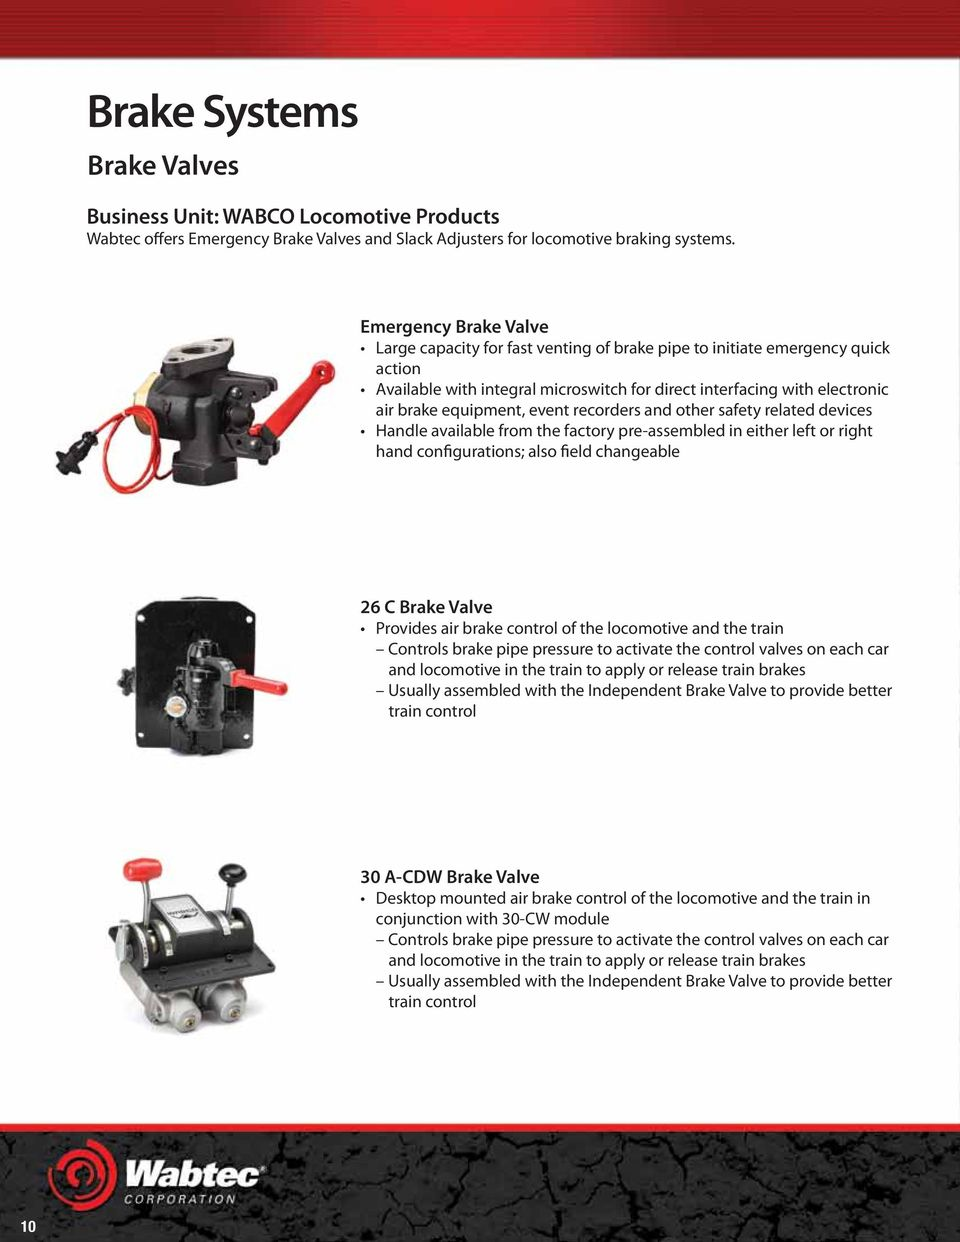 event recorders and other safety related devices Handle available from the factory pre-assembled in either left or right hand configurations; also field changeable 26 C Brake Valve Provides air brake